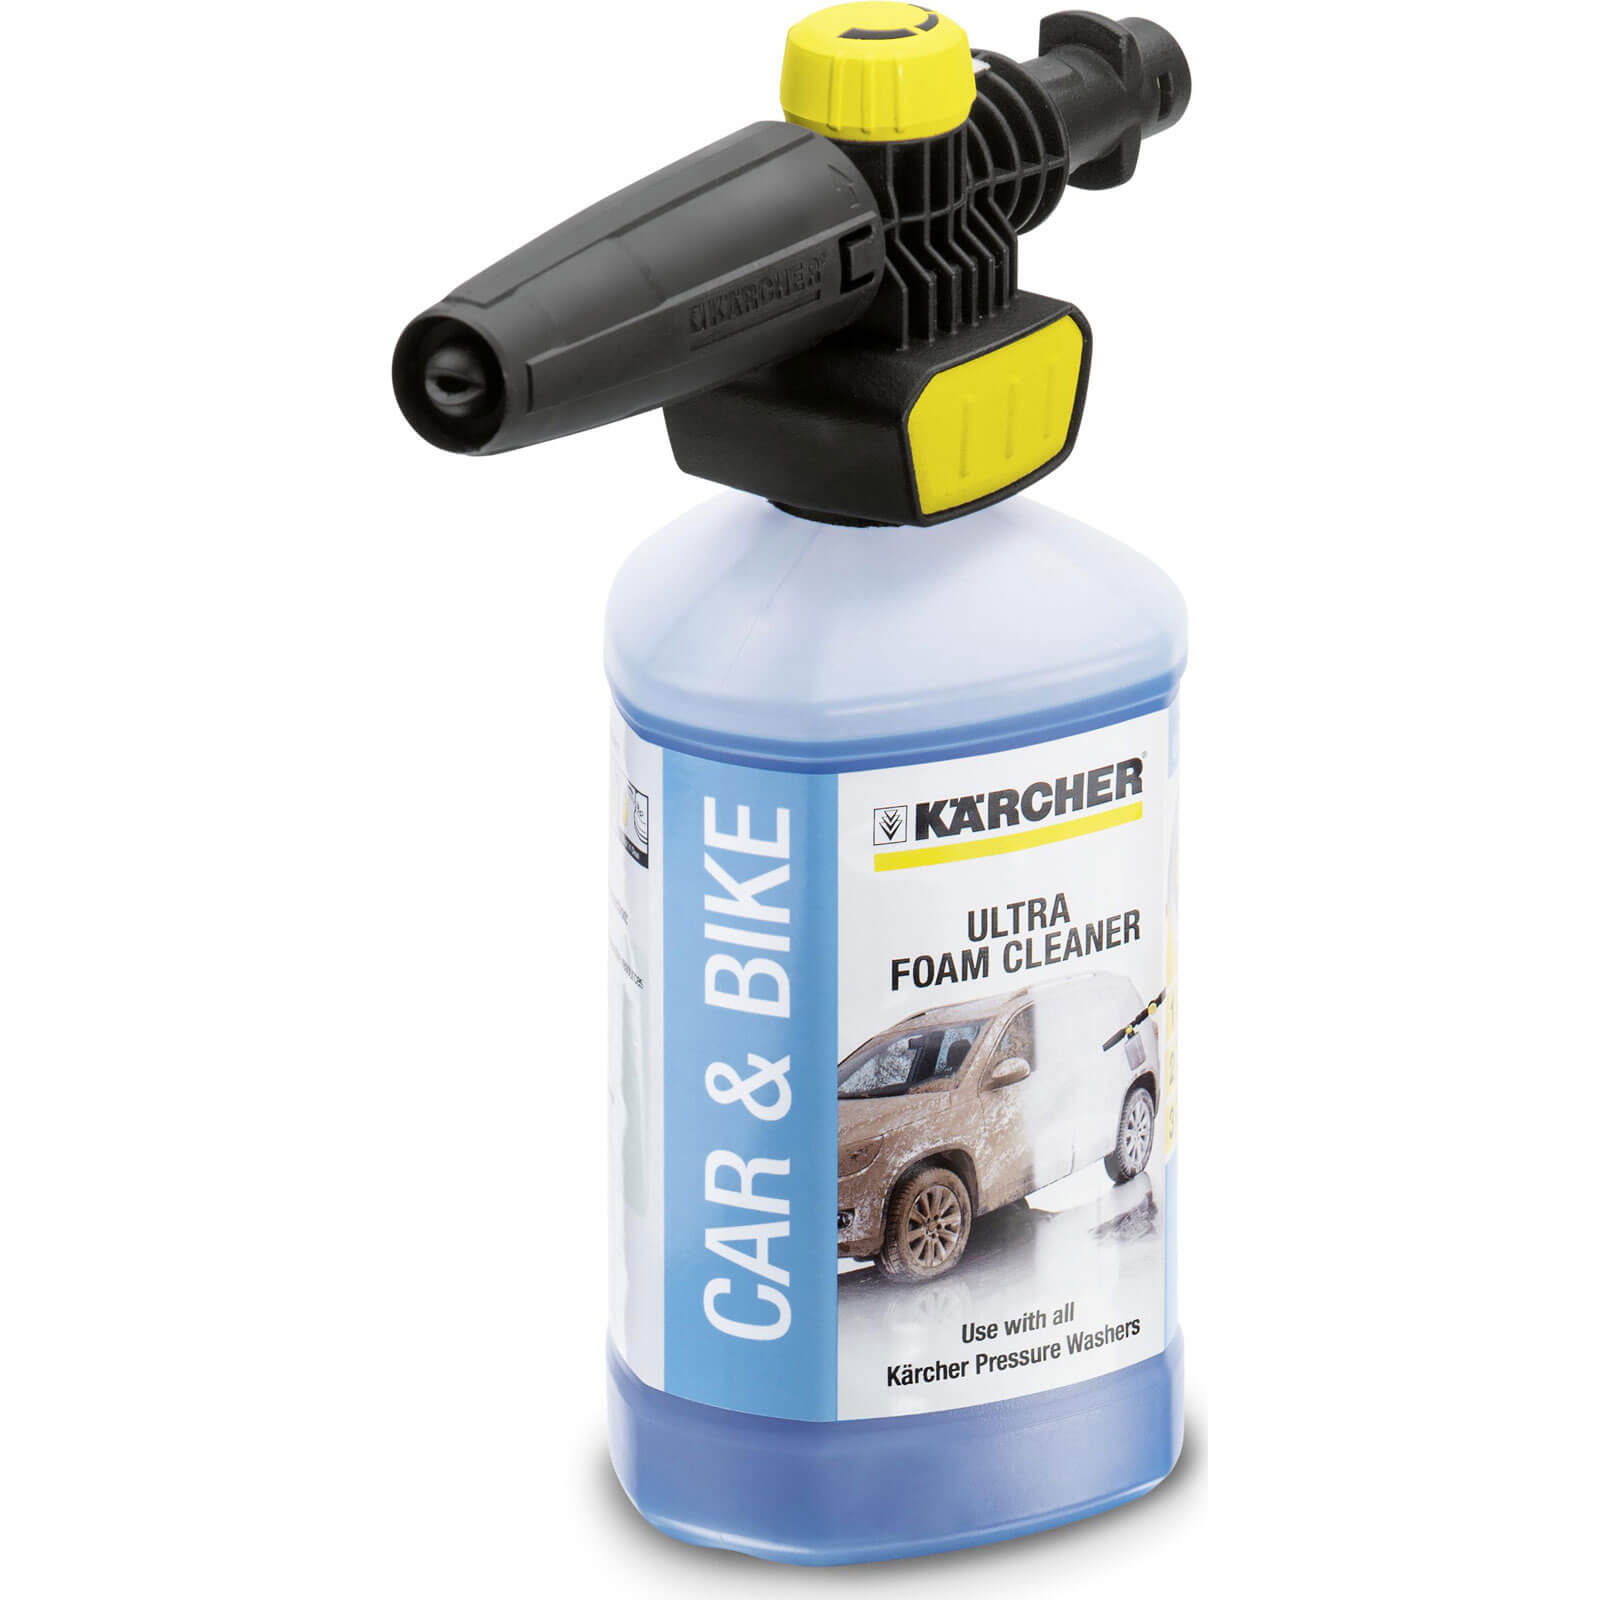 Karcher Plug n Clean Foam Nozzle with Ultra Foam Cleaner for K Series Pressure Washers 1l